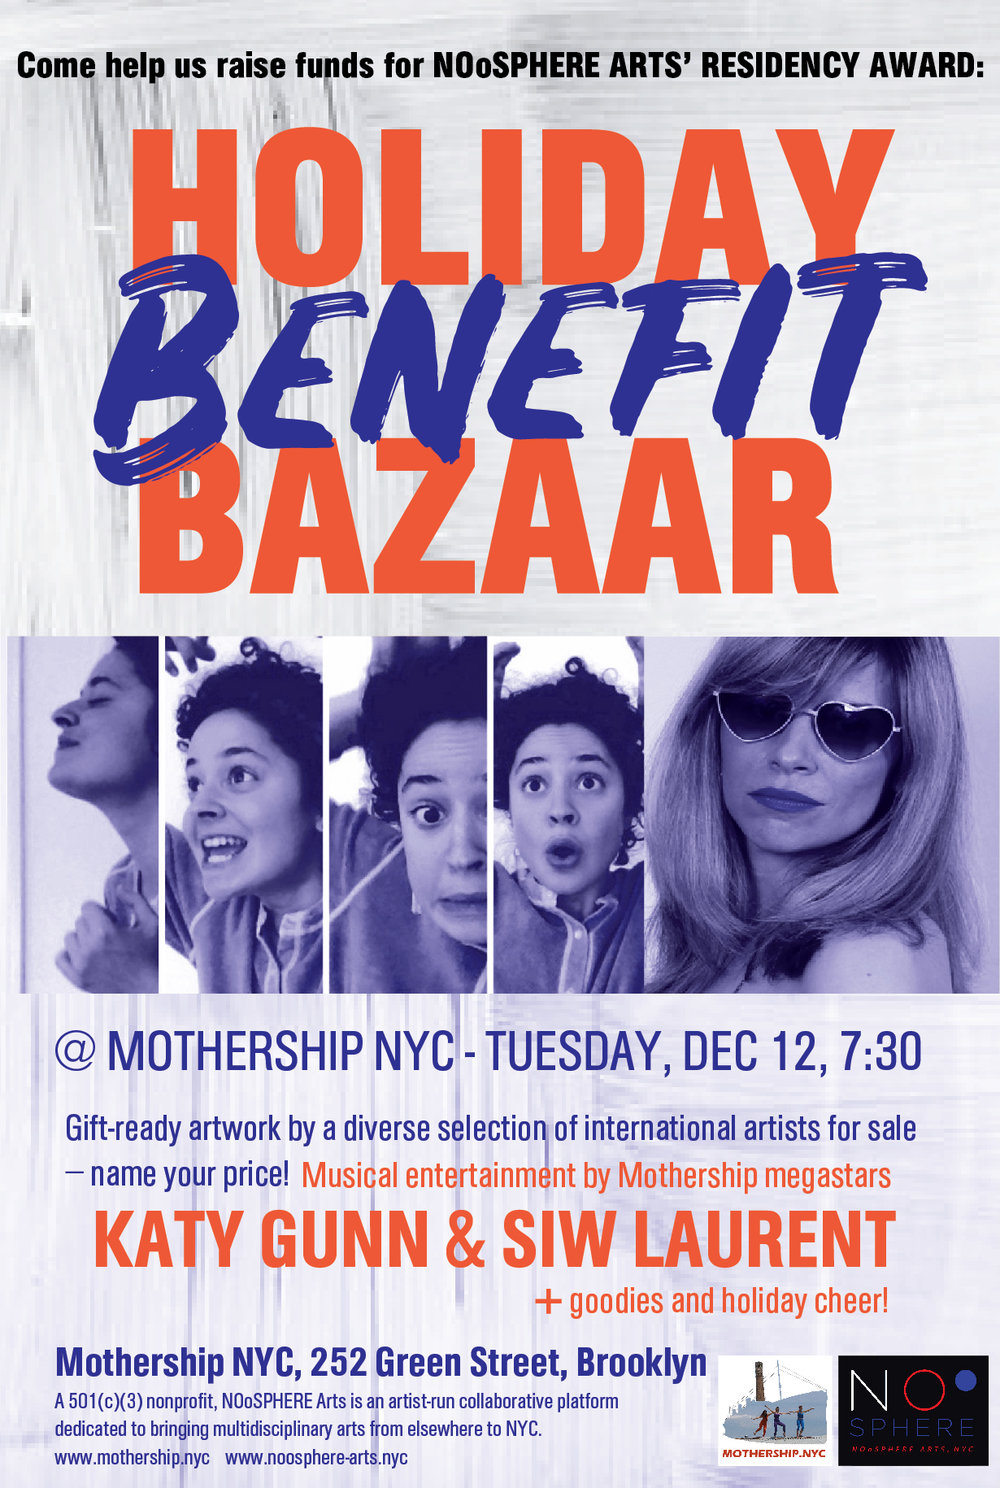 HOLIDAY BEENFIT - We are pleased to announce a new initiative under the  NOoSPHERE Arts umbrella.As an artist-run nonprofit dedicated to bringing art from elsewhere to NYC, we keep thinking of more ways to accomplish this goal! Our latest vision is NOoSPHERE Arts' Residency Award, a grant program we hope to implement by 2018: Once a year, a talented international artist will be selected for a month-long residency onboard with us, followed by a public presentation of their work.As a first fundraising initiative to make this happen, we'll host an informal SILENT AUCTION of unique artworks by a selection of our international NOoSPHERE artists.Tuesday, December 12, 20177:30 PM @ Mothership NYCLive music by Katy Gunn and Siw Laurent